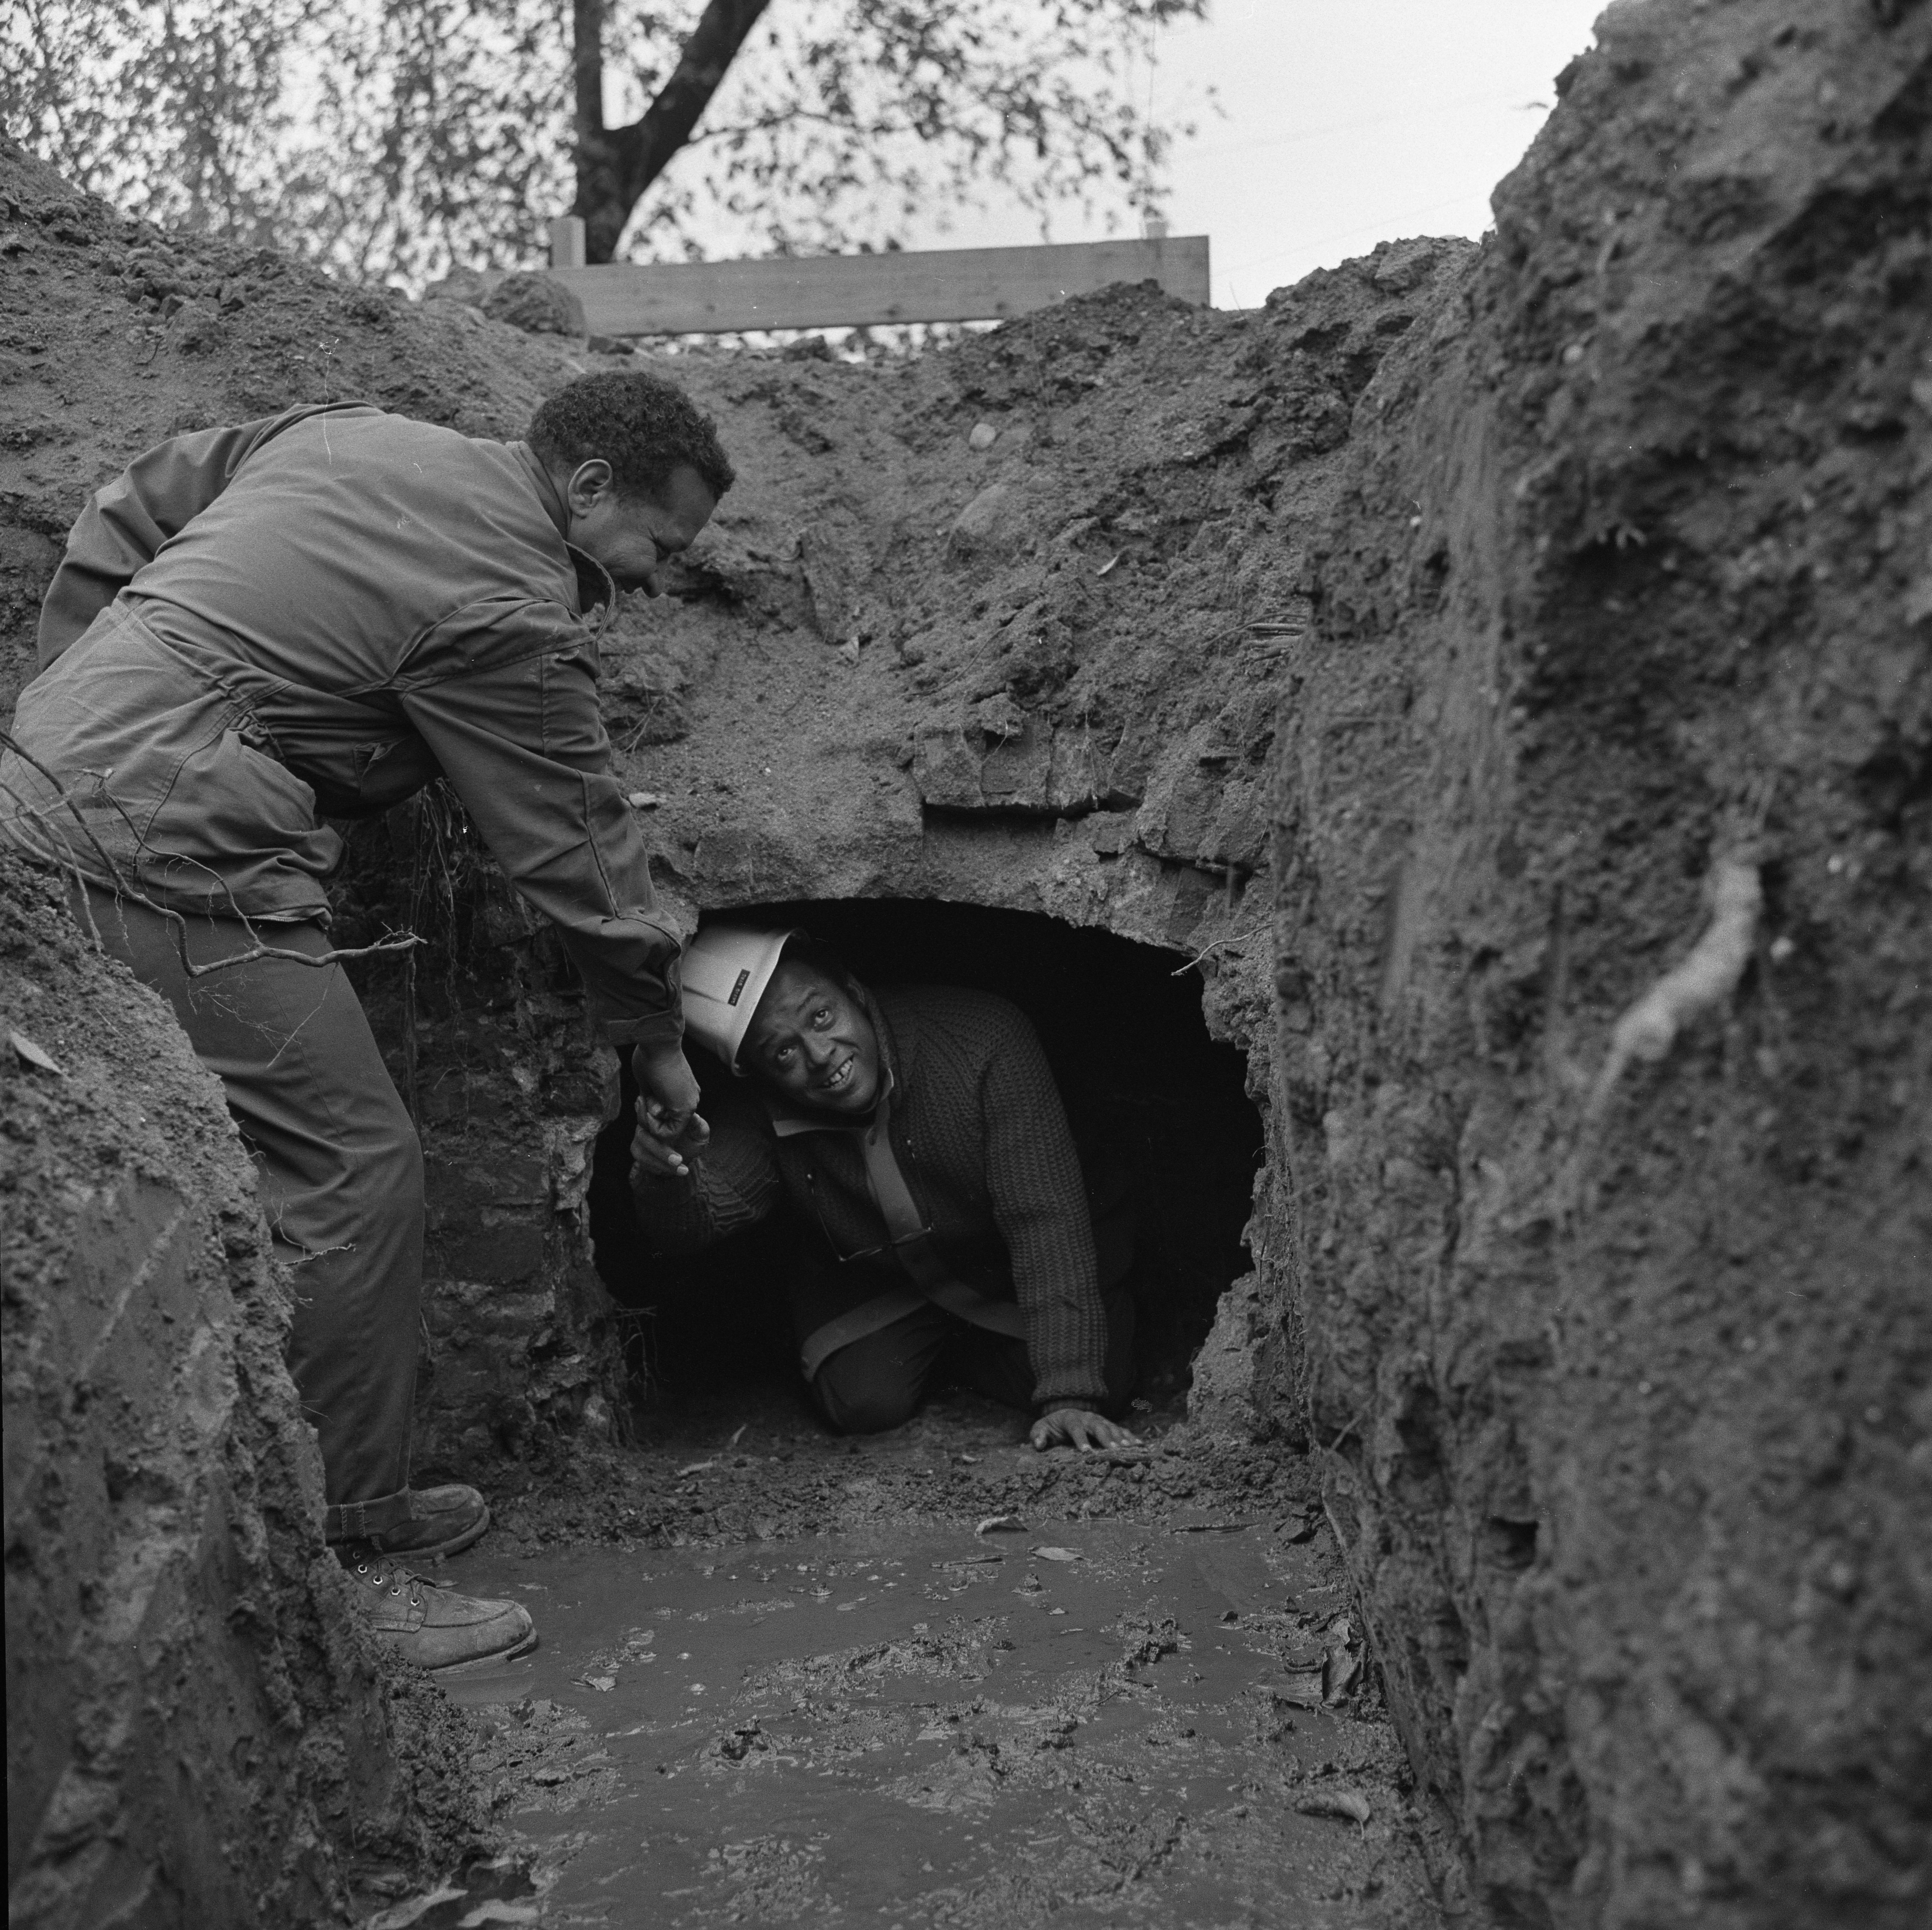 Donald Calvert Helps David R. Byrd Exit Possible Slave Tunnel Discovered Under Washtenaw Lumber Building, November 1972 image